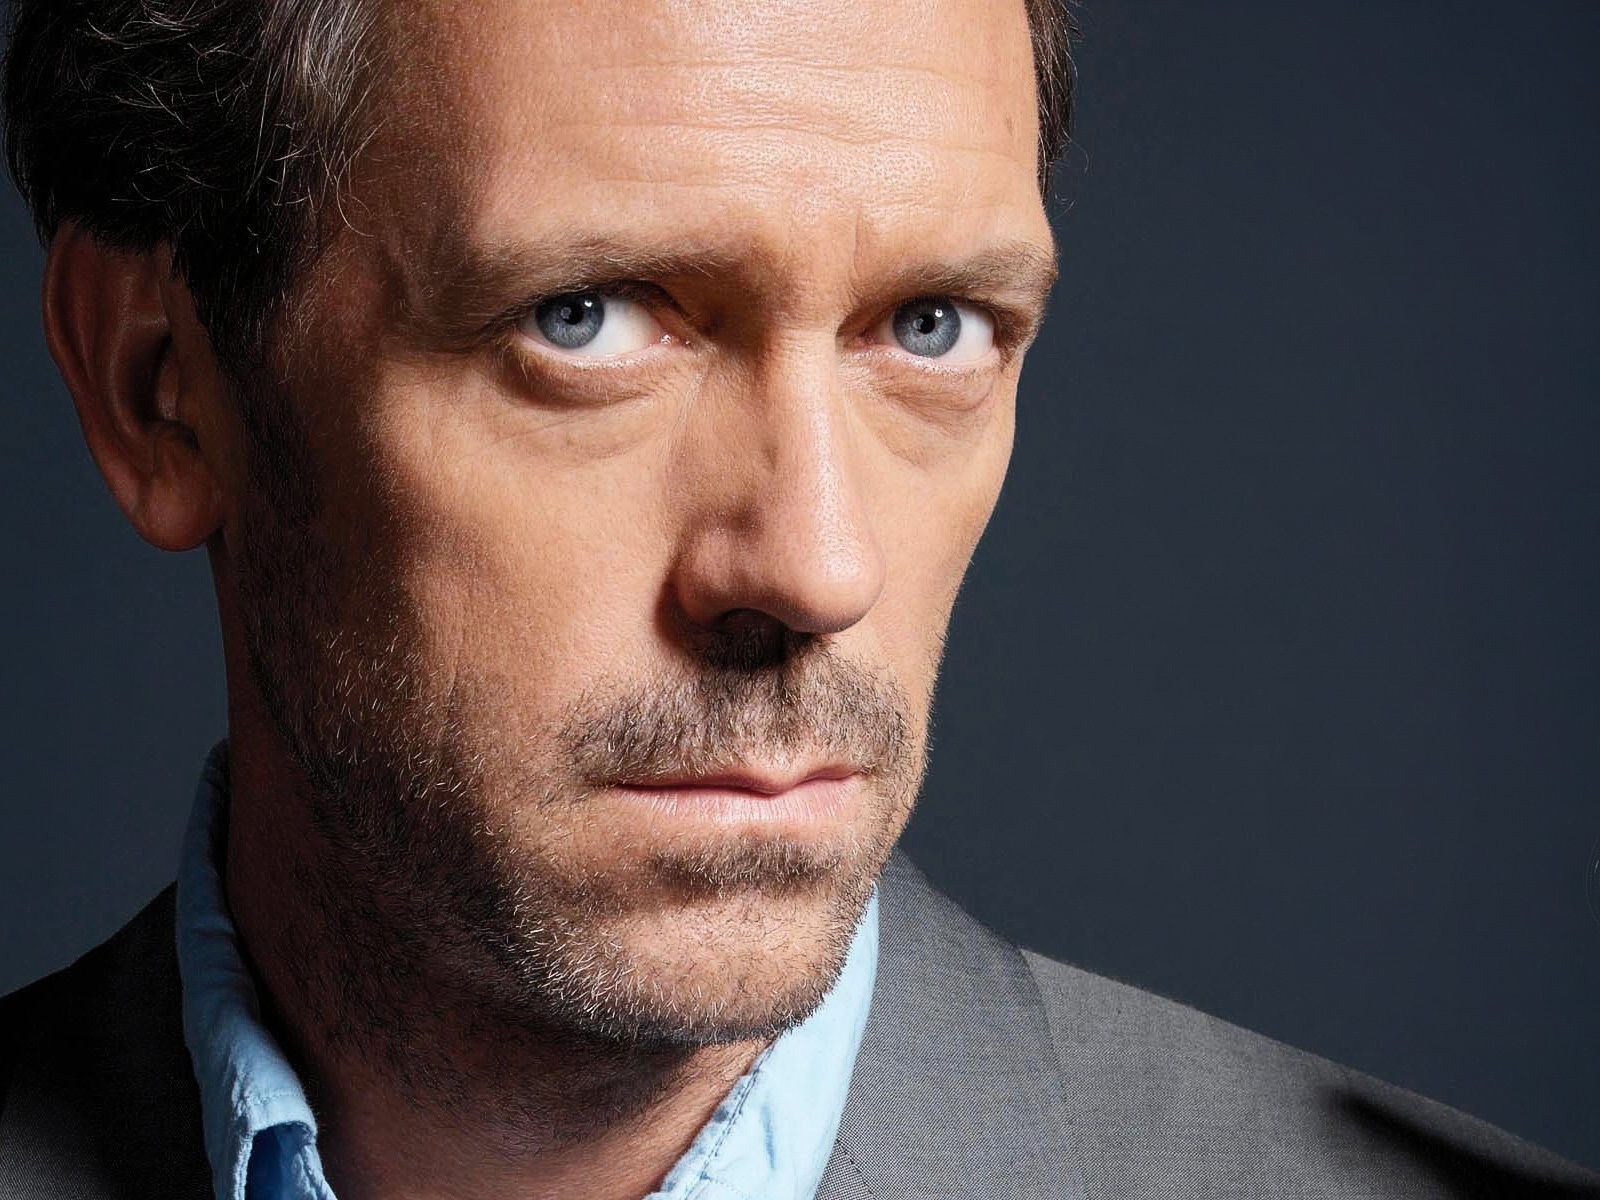 Everybody lies Dr Gregory House Hugh Laurie who plays Dr